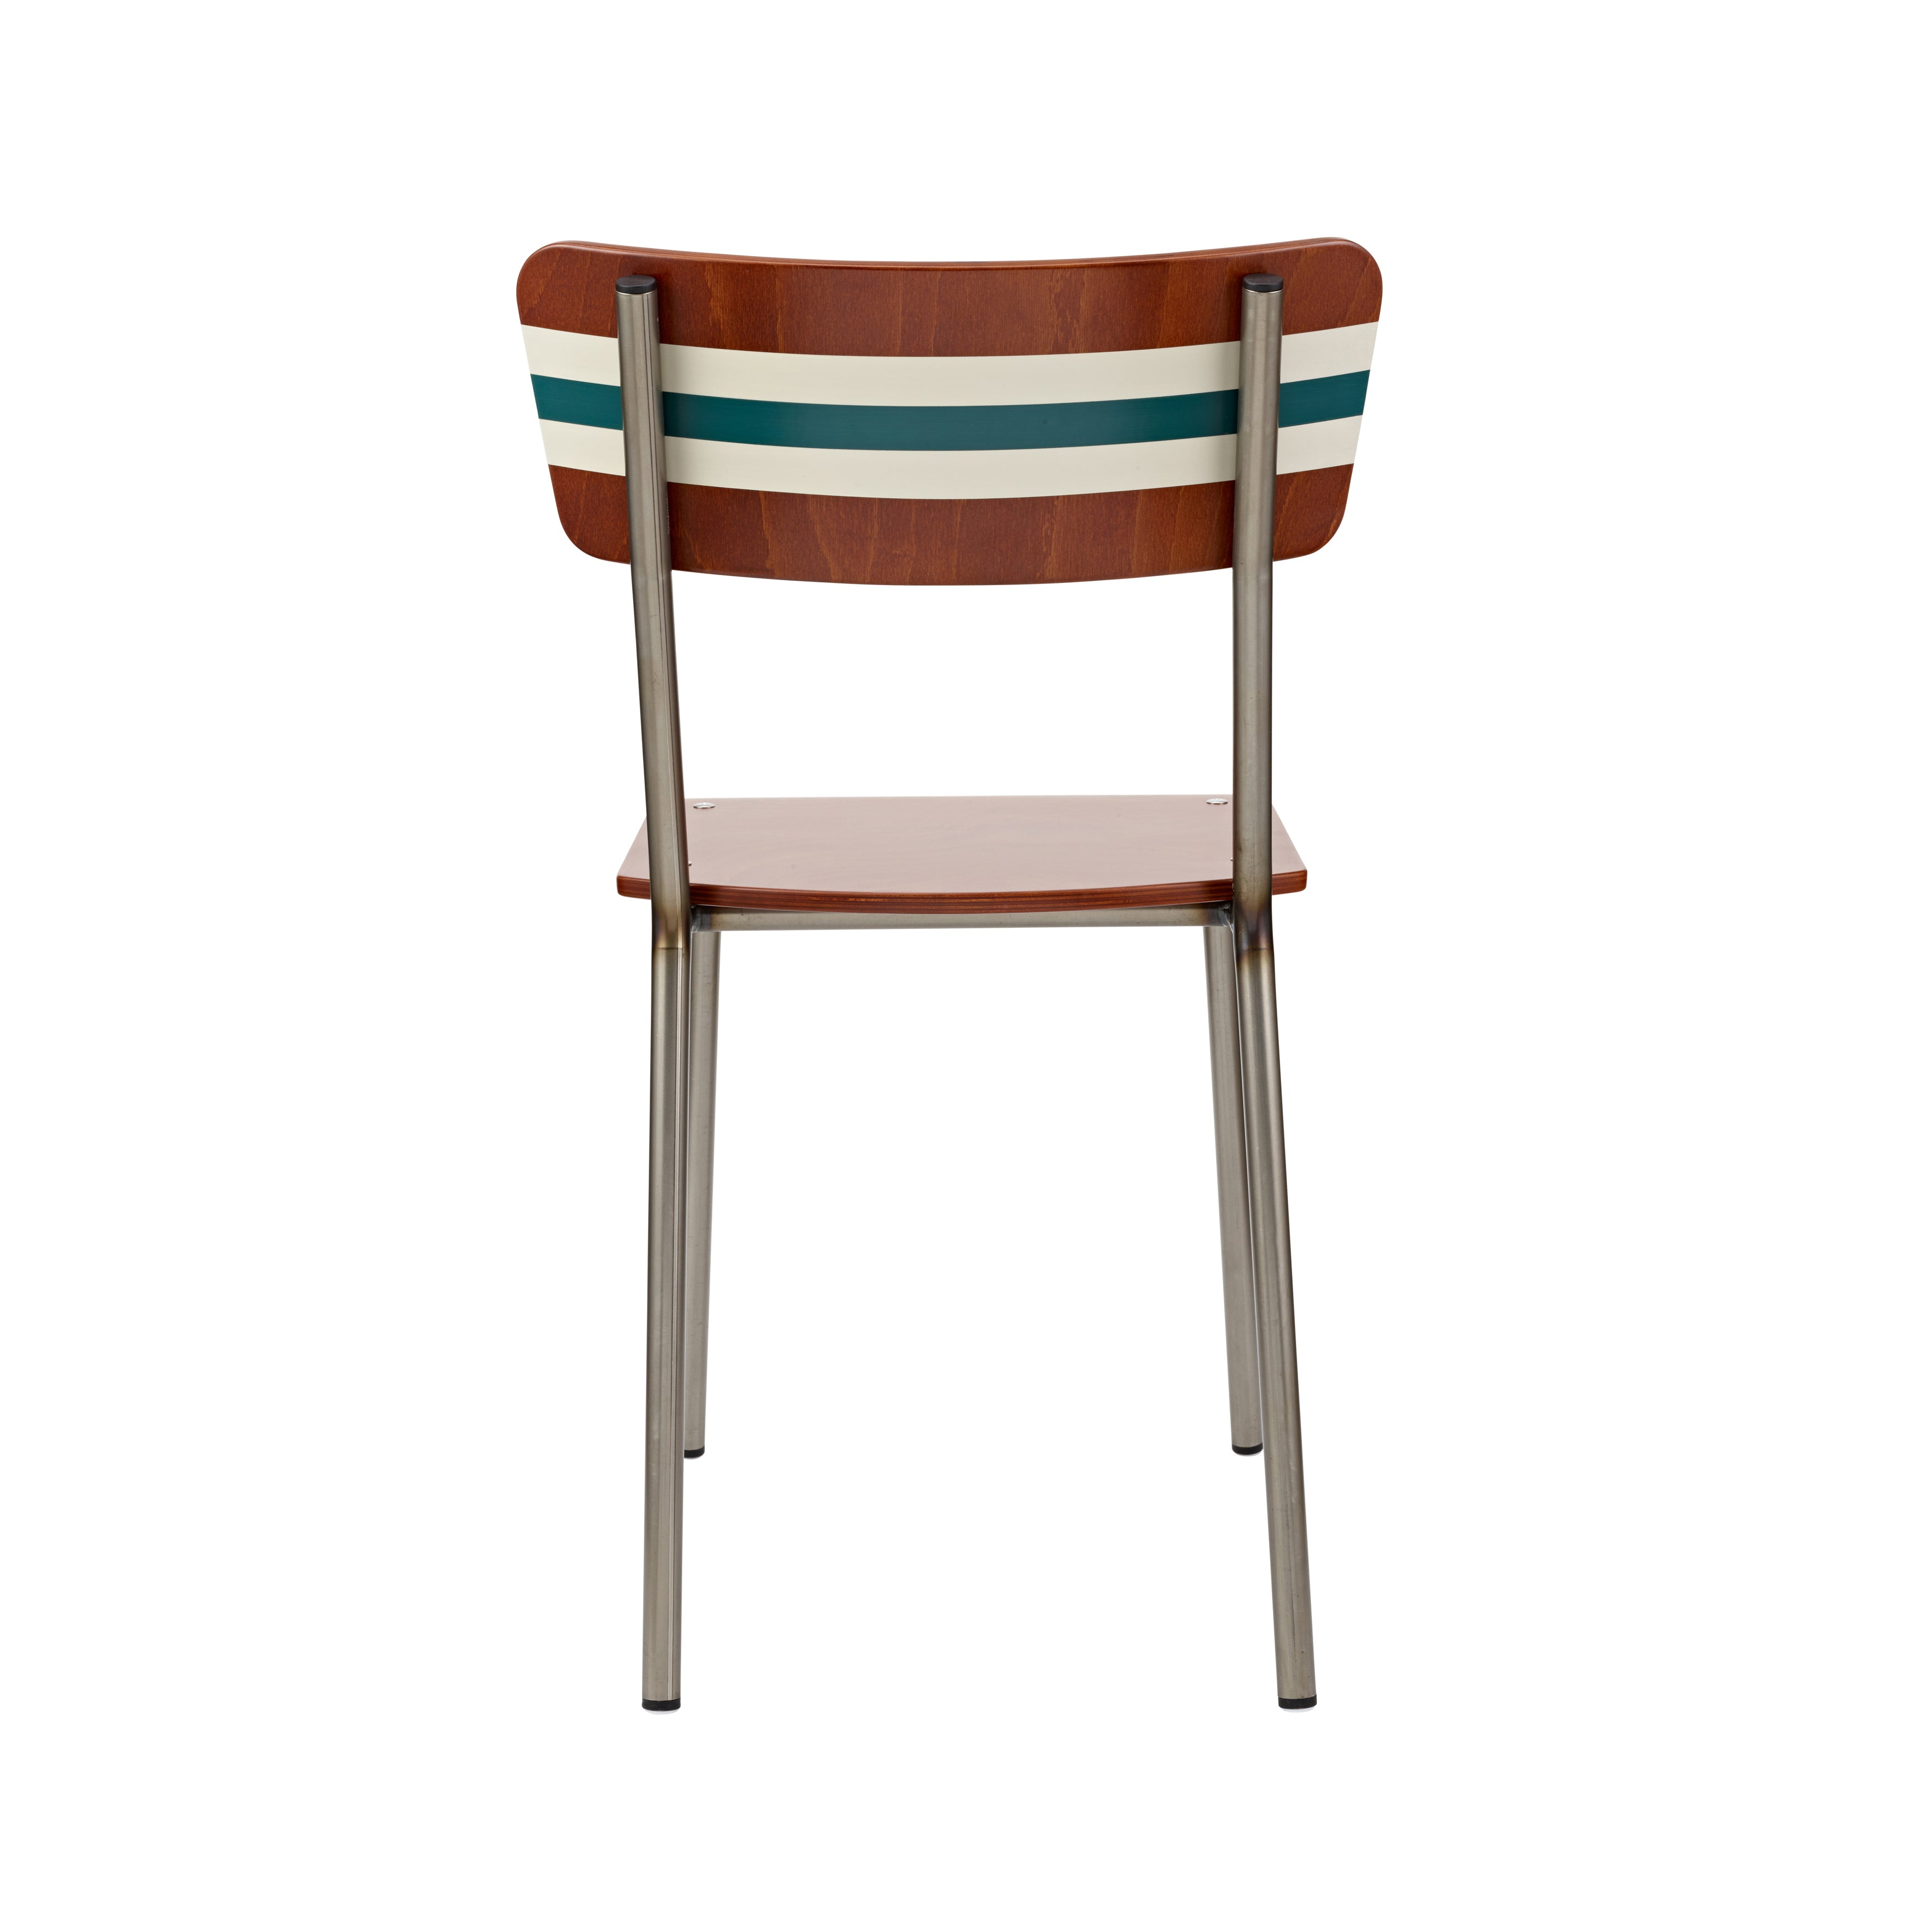 find-contemporary-british-school-chairs-to-buy-in-the-warehouse-home-shop